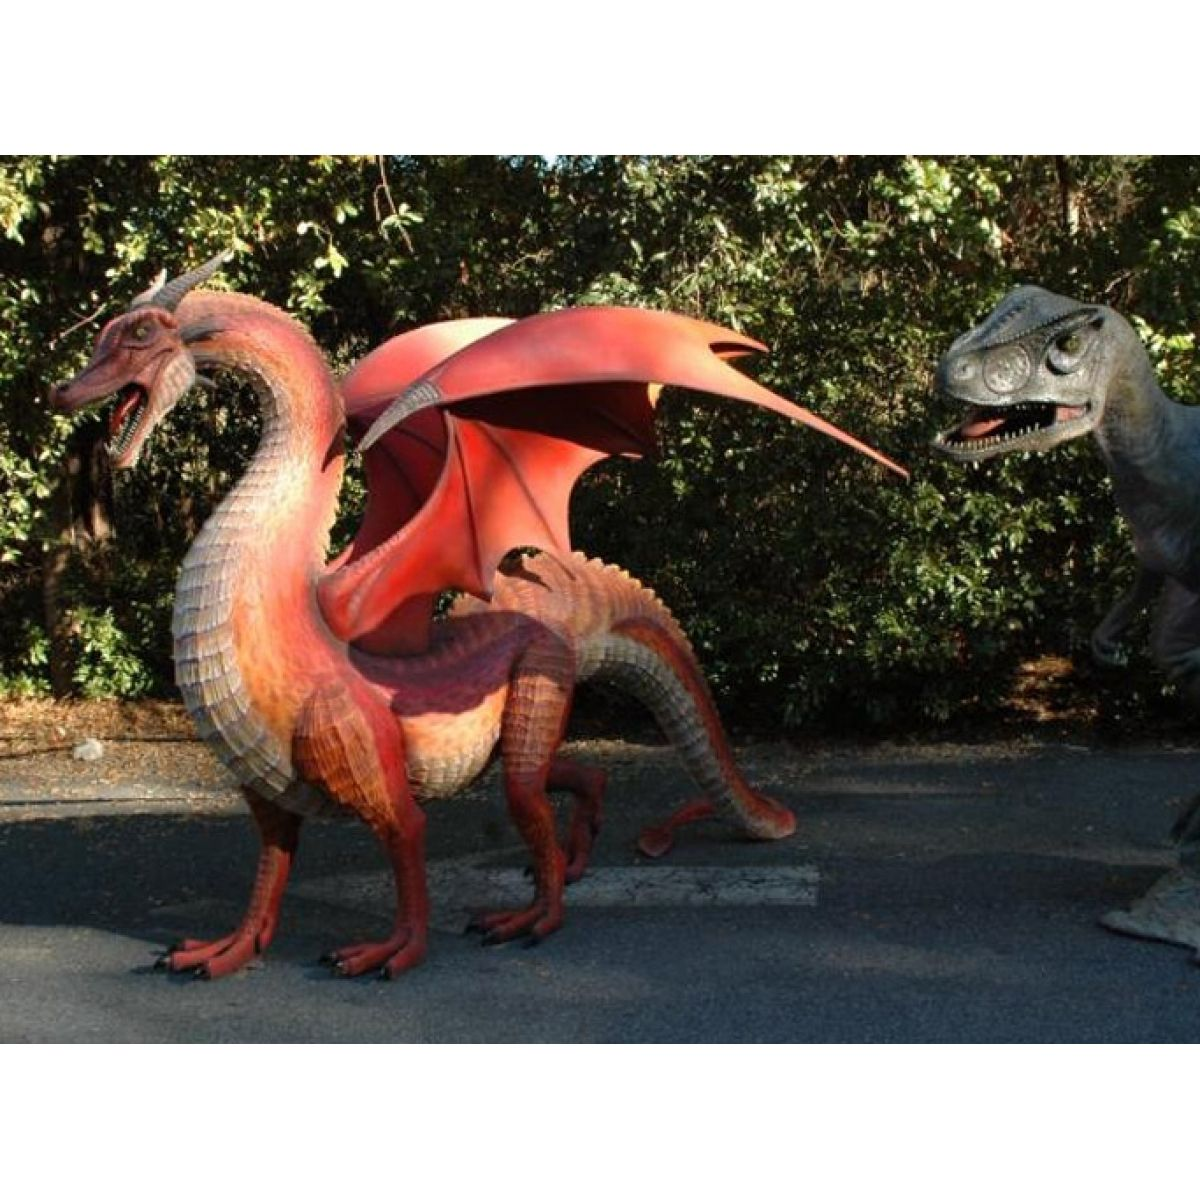 Giant Dragon Red Wings Big Huge Statue Cool Life Size